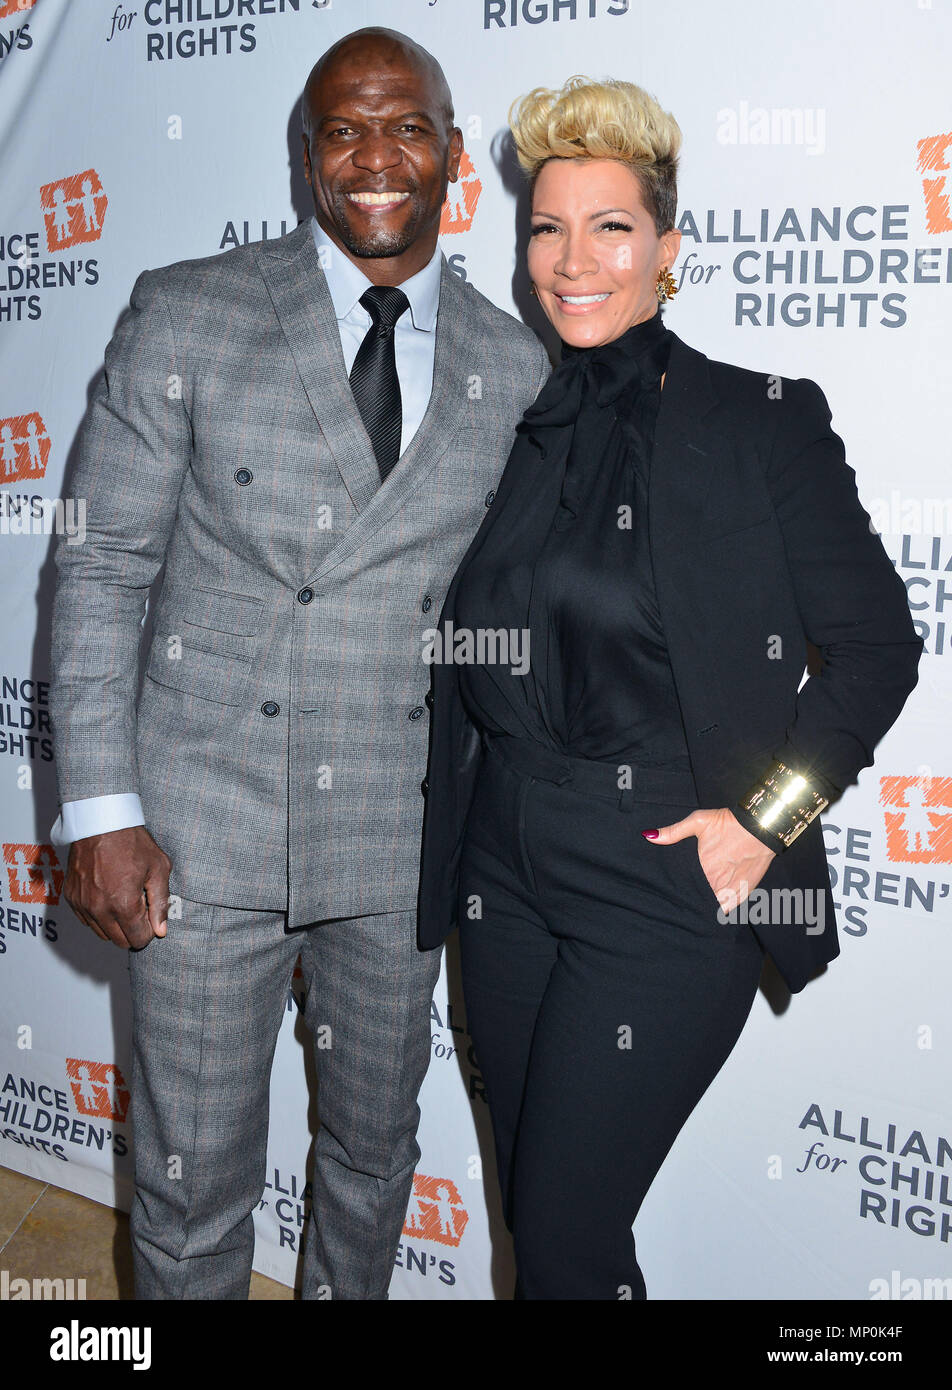 Terry Crews and wife arriving The Alliance for ChildrenÕs RightsÕ 24th Annual Dinner at the Beverly Hilton Hotel in Los Angeles. March 10, 2016.Terry Crews and wife ------------- Red Carpet Event, Vertical, USA, Film Industry, Celebrities,  Photography, Bestof, Arts Culture and Entertainment, Topix Celebrities fashion /  Vertical, Best of, Event in Hollywood Life - California,  Red Carpet and backstage, USA, Film Industry, Celebrities,  movie celebrities, TV celebrities, Music celebrities, Photography, Bestof, Arts Culture and Entertainment,  Topix, vertical,  family from from the year , 2016, - Stock Image